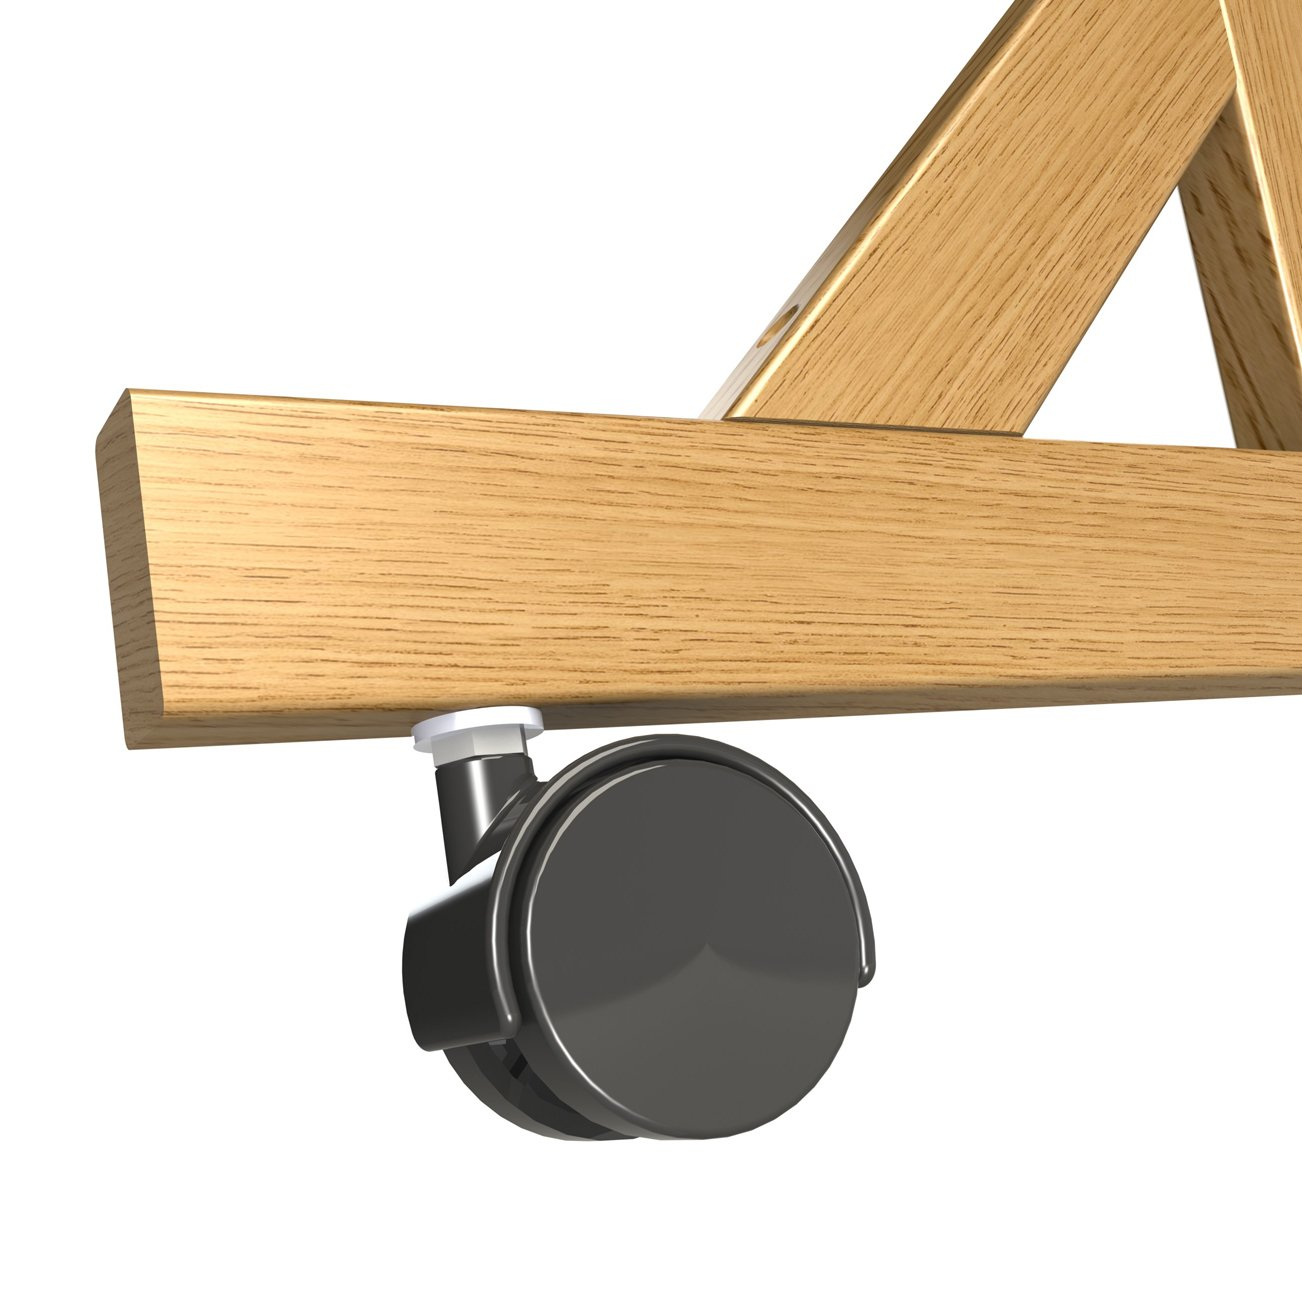 Casters - Set of 4 for Wood Frame Reversible Units Only